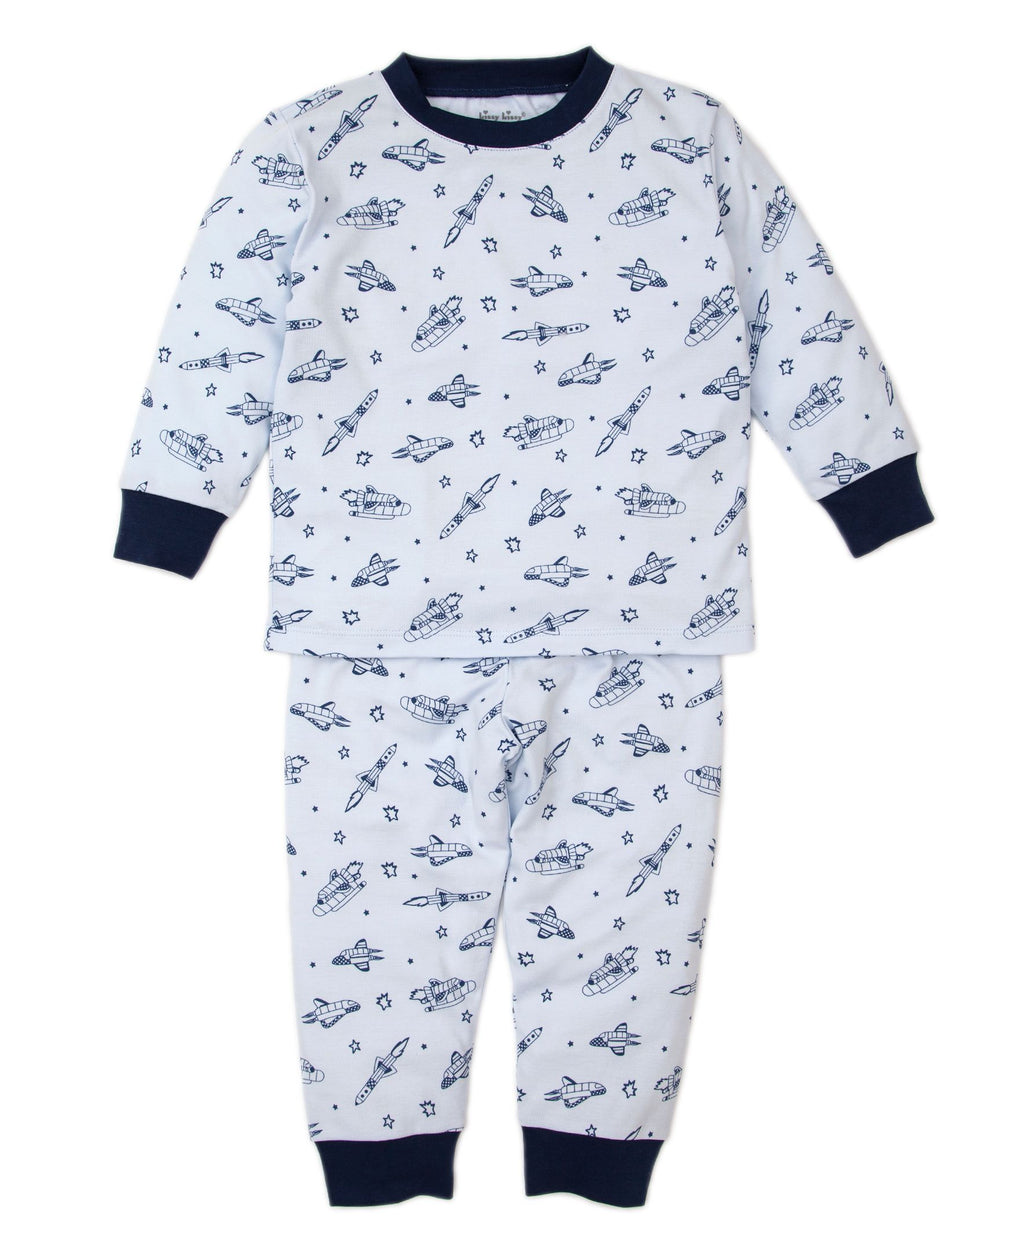 Spaceships Toddler Pajama Set